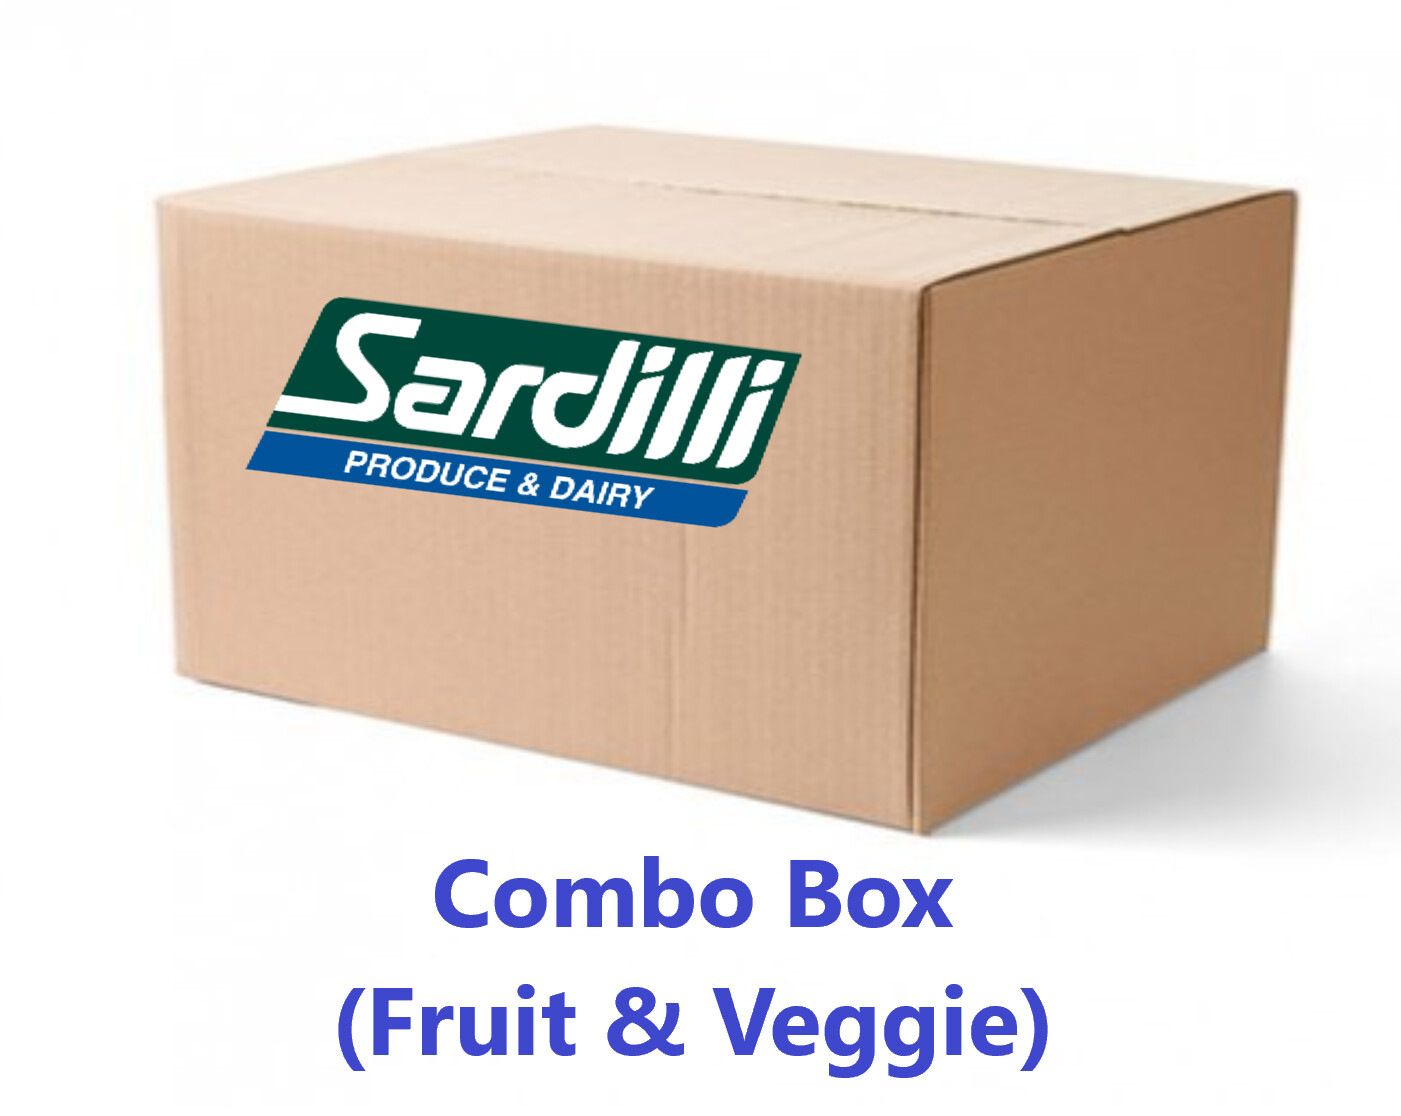 COMBO BOX - FOR WEDNESDAY JAN 20th -Eat your Veggies and Boost your immune system with California Cara Cara and Blood Oranges